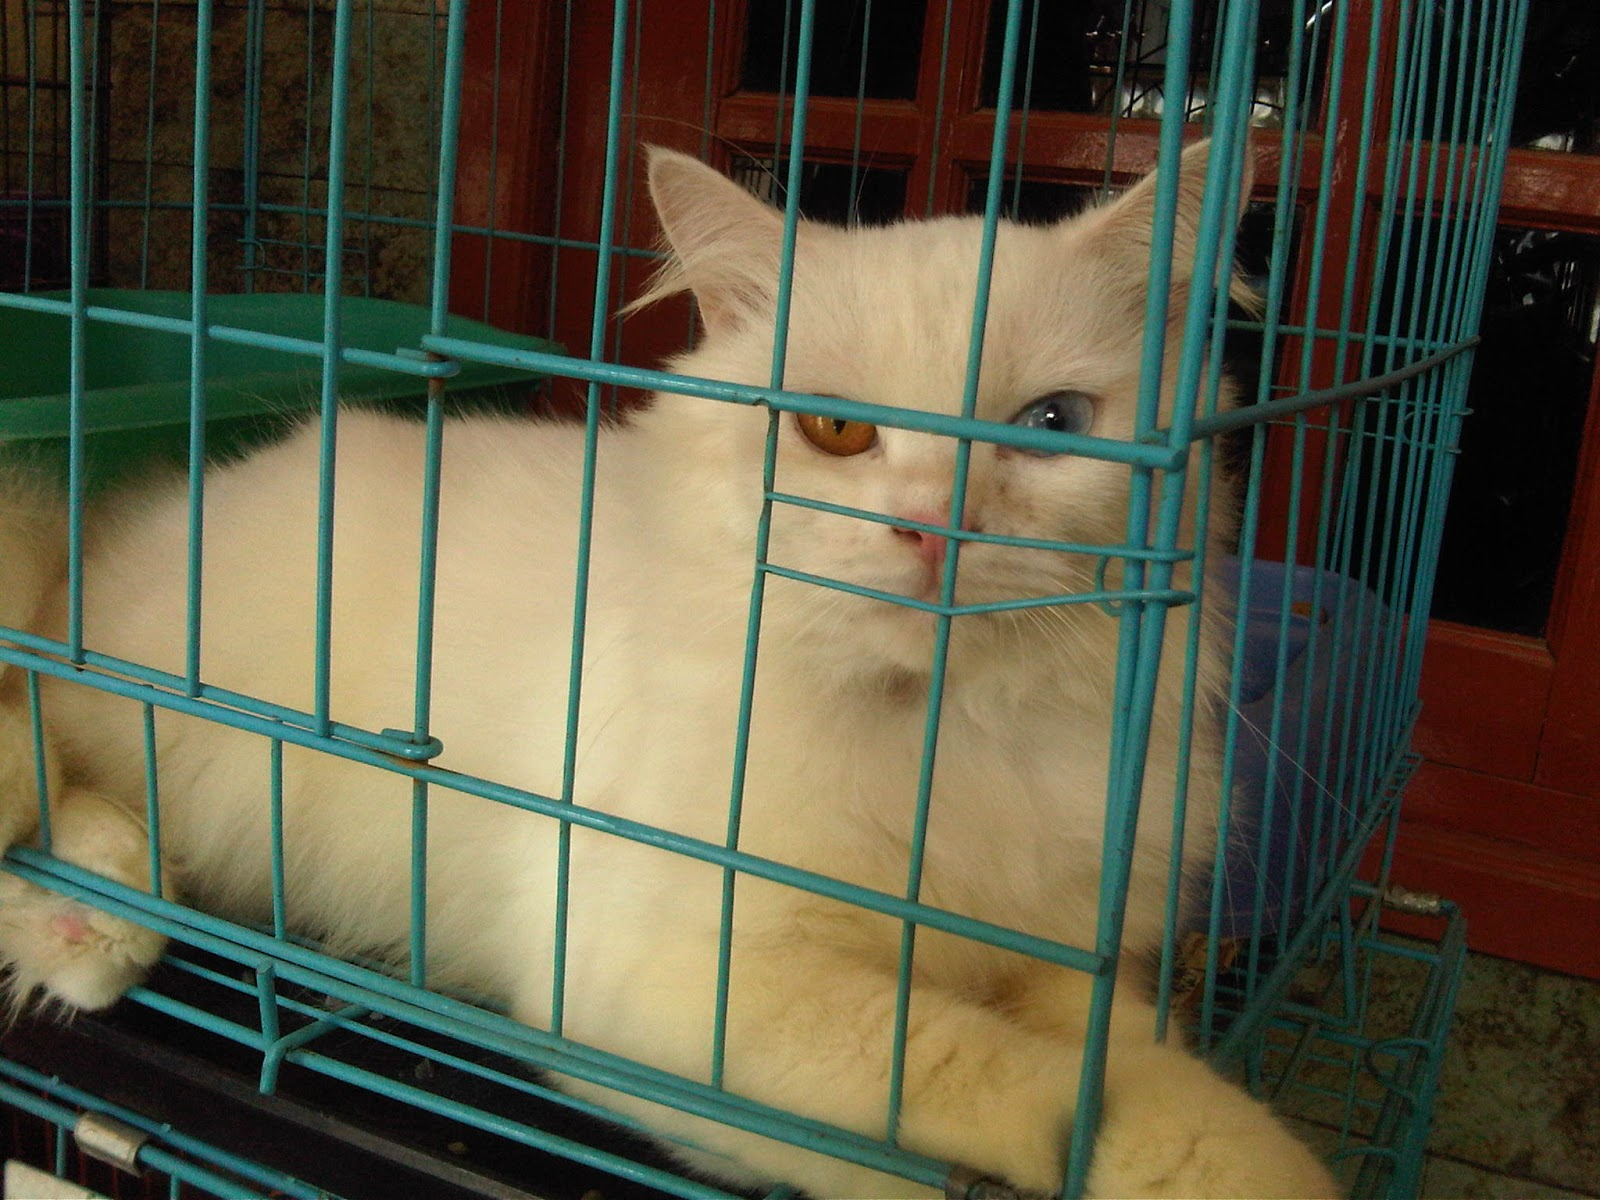 Chesarina S Blog Pecinta Kucing